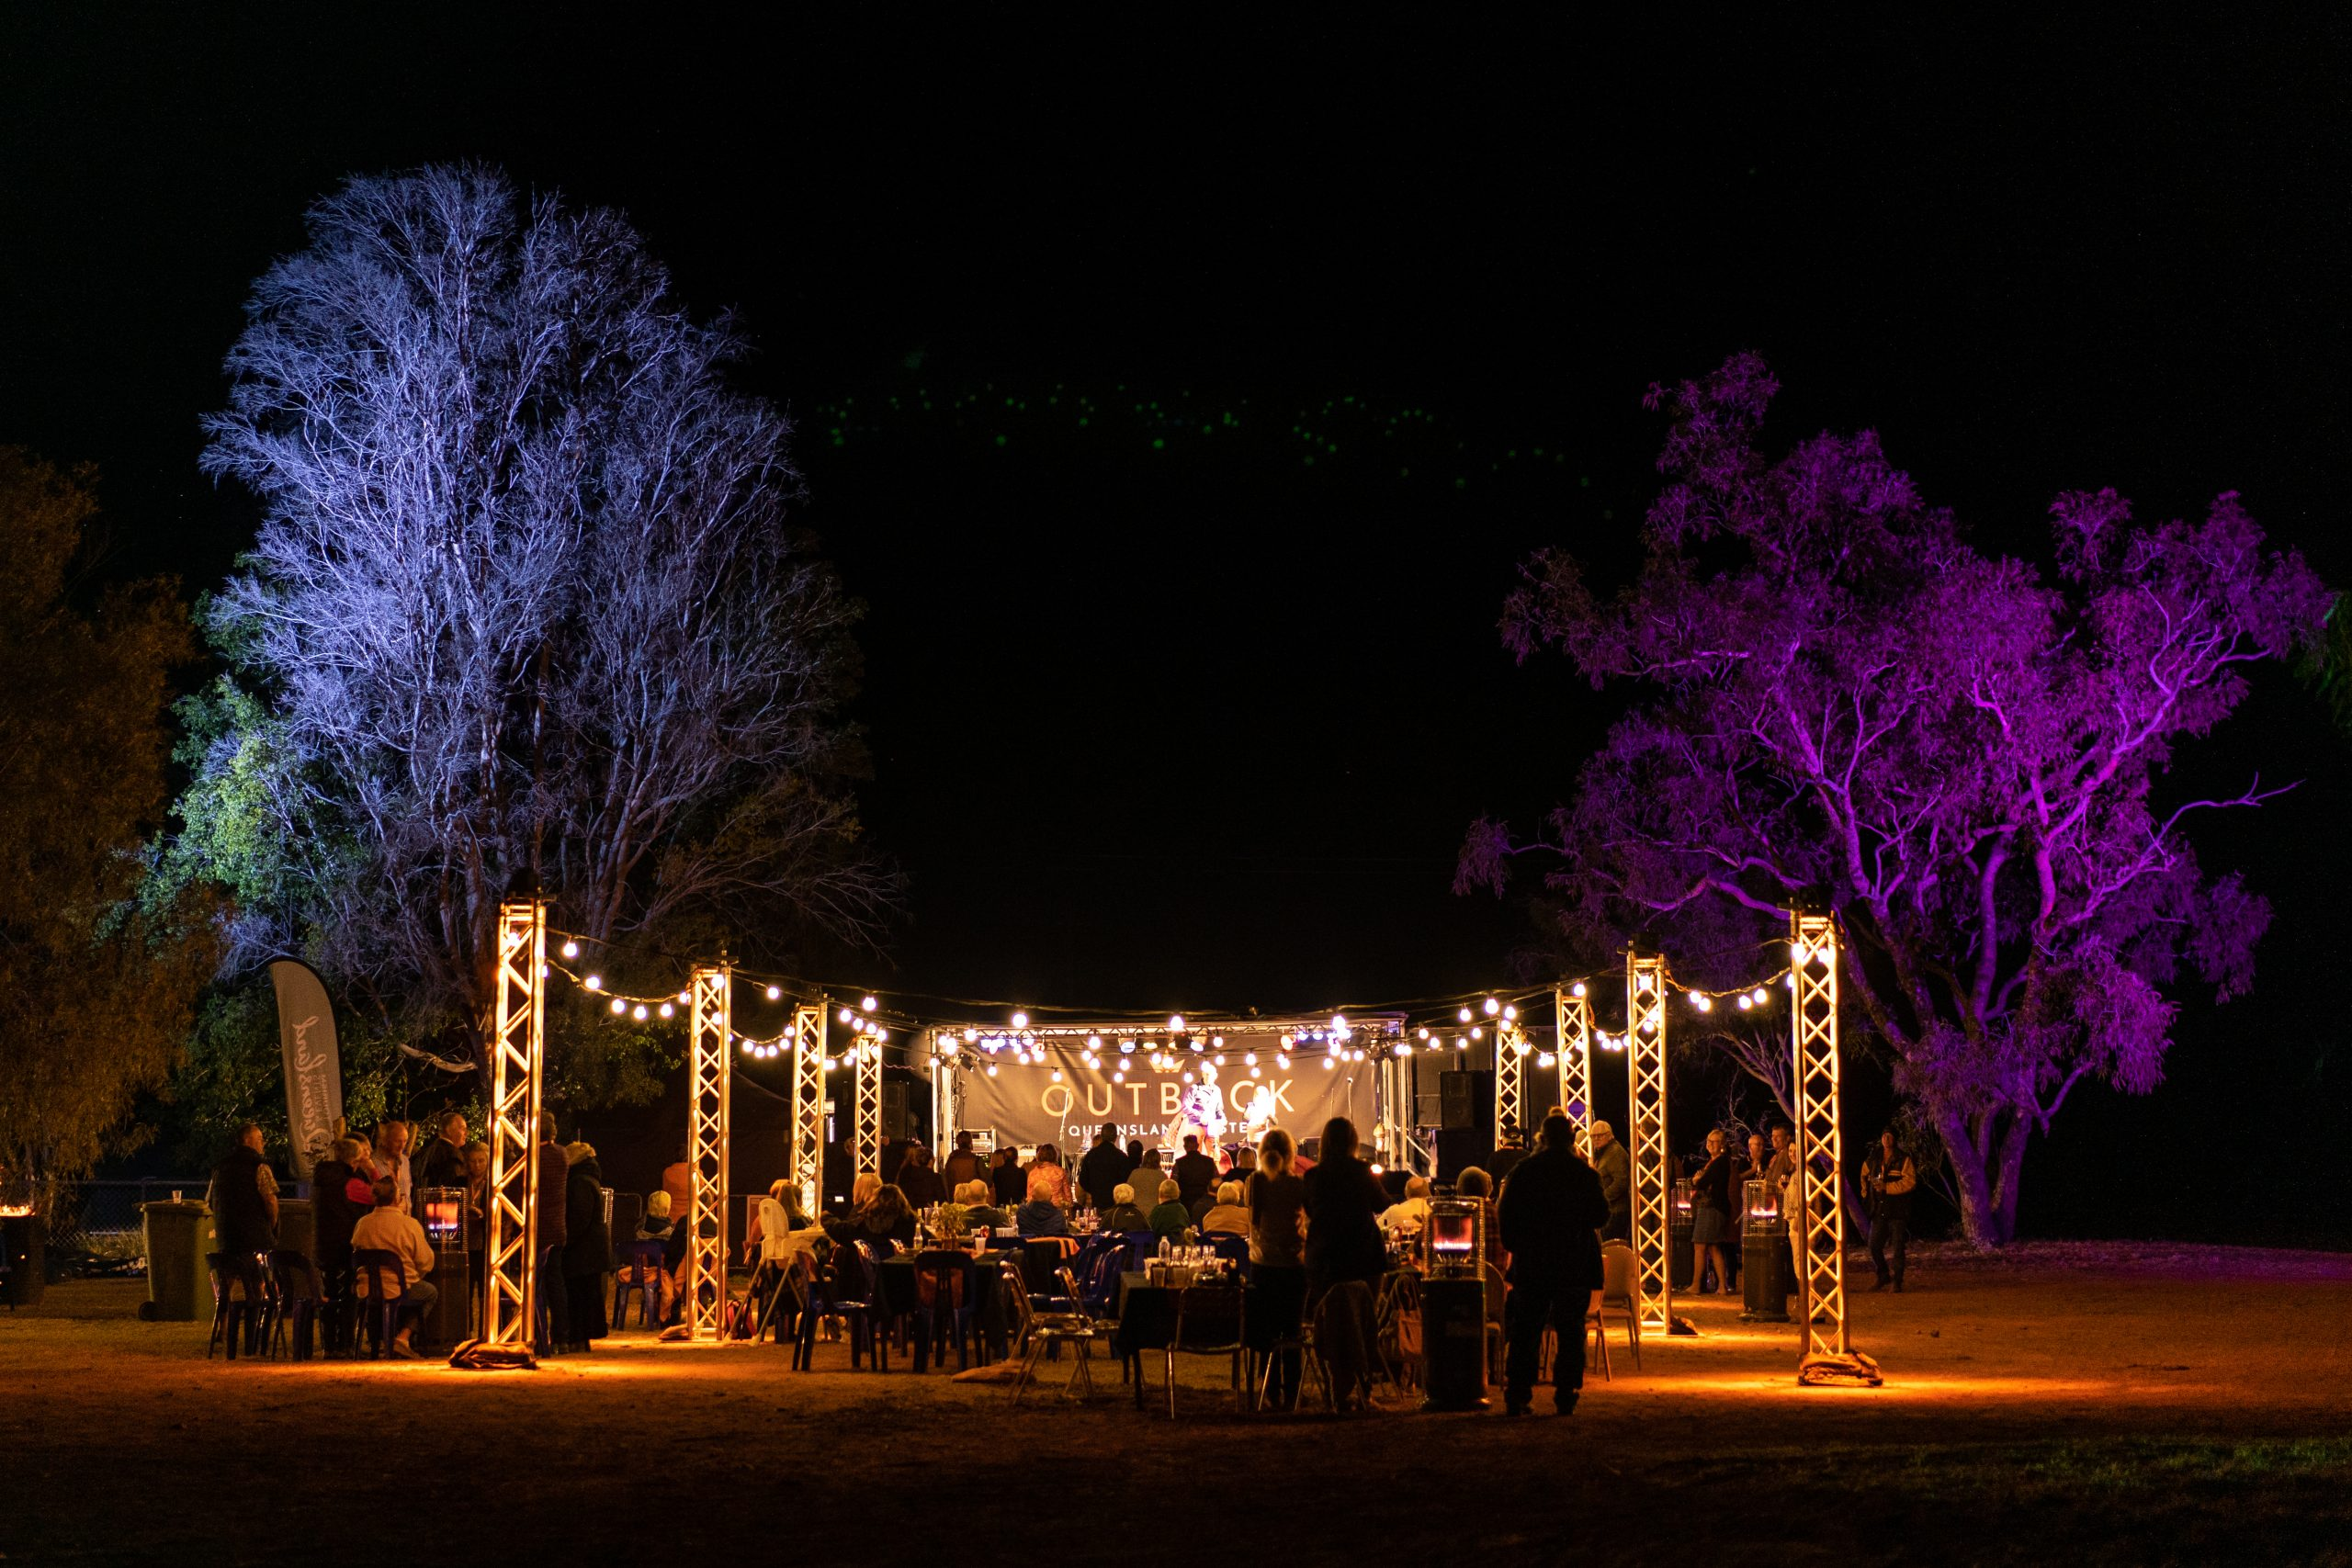 Outback-Qld-Masters.-Dinner-Under-the-Stars-of-the-Milky-Way